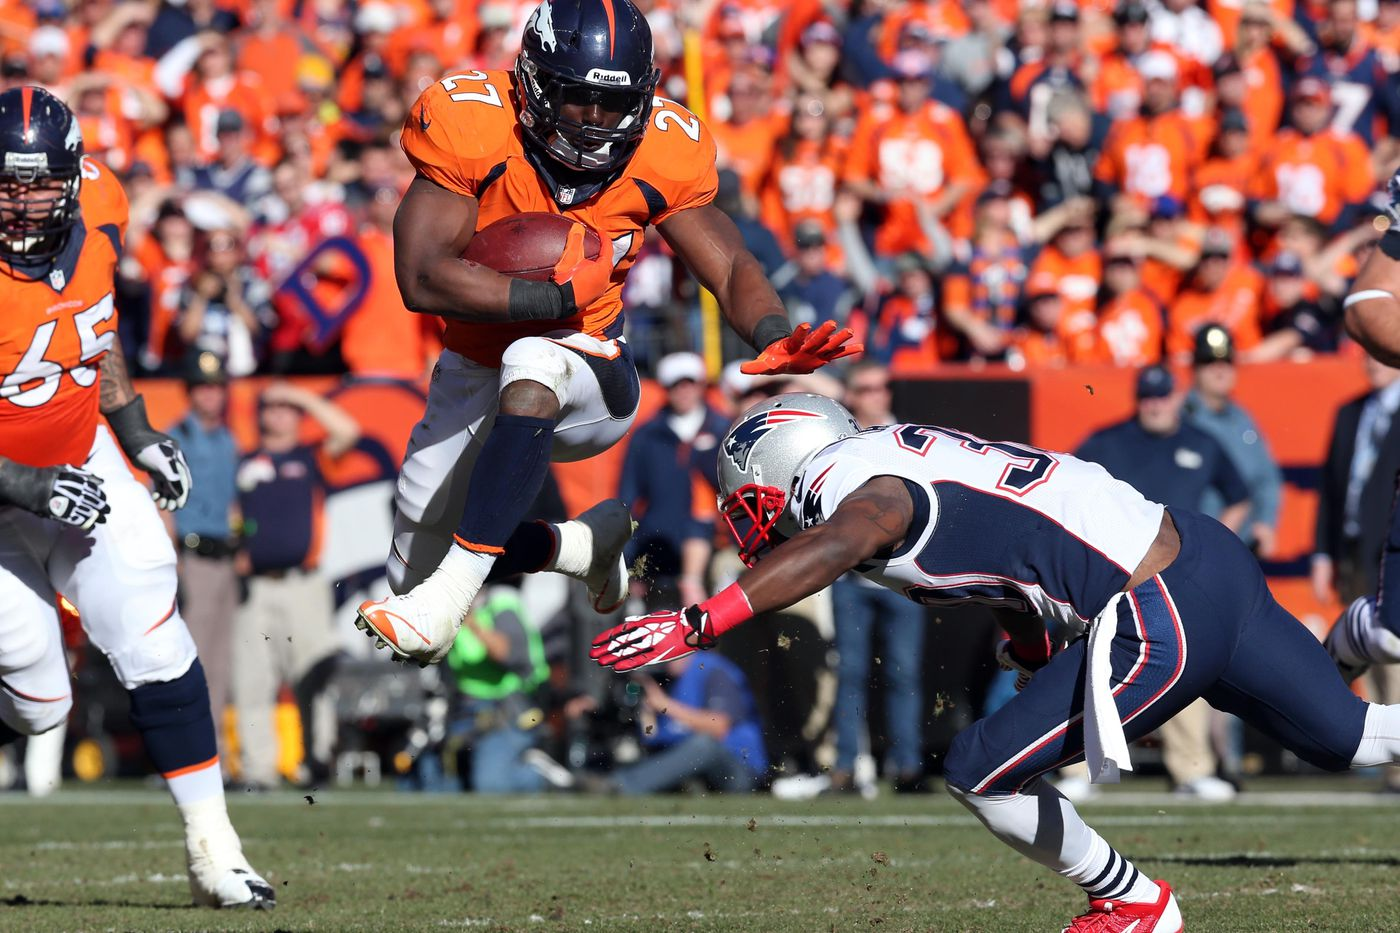 Miami Dolphins May Have Strong Tandem In Knowshon Moreno